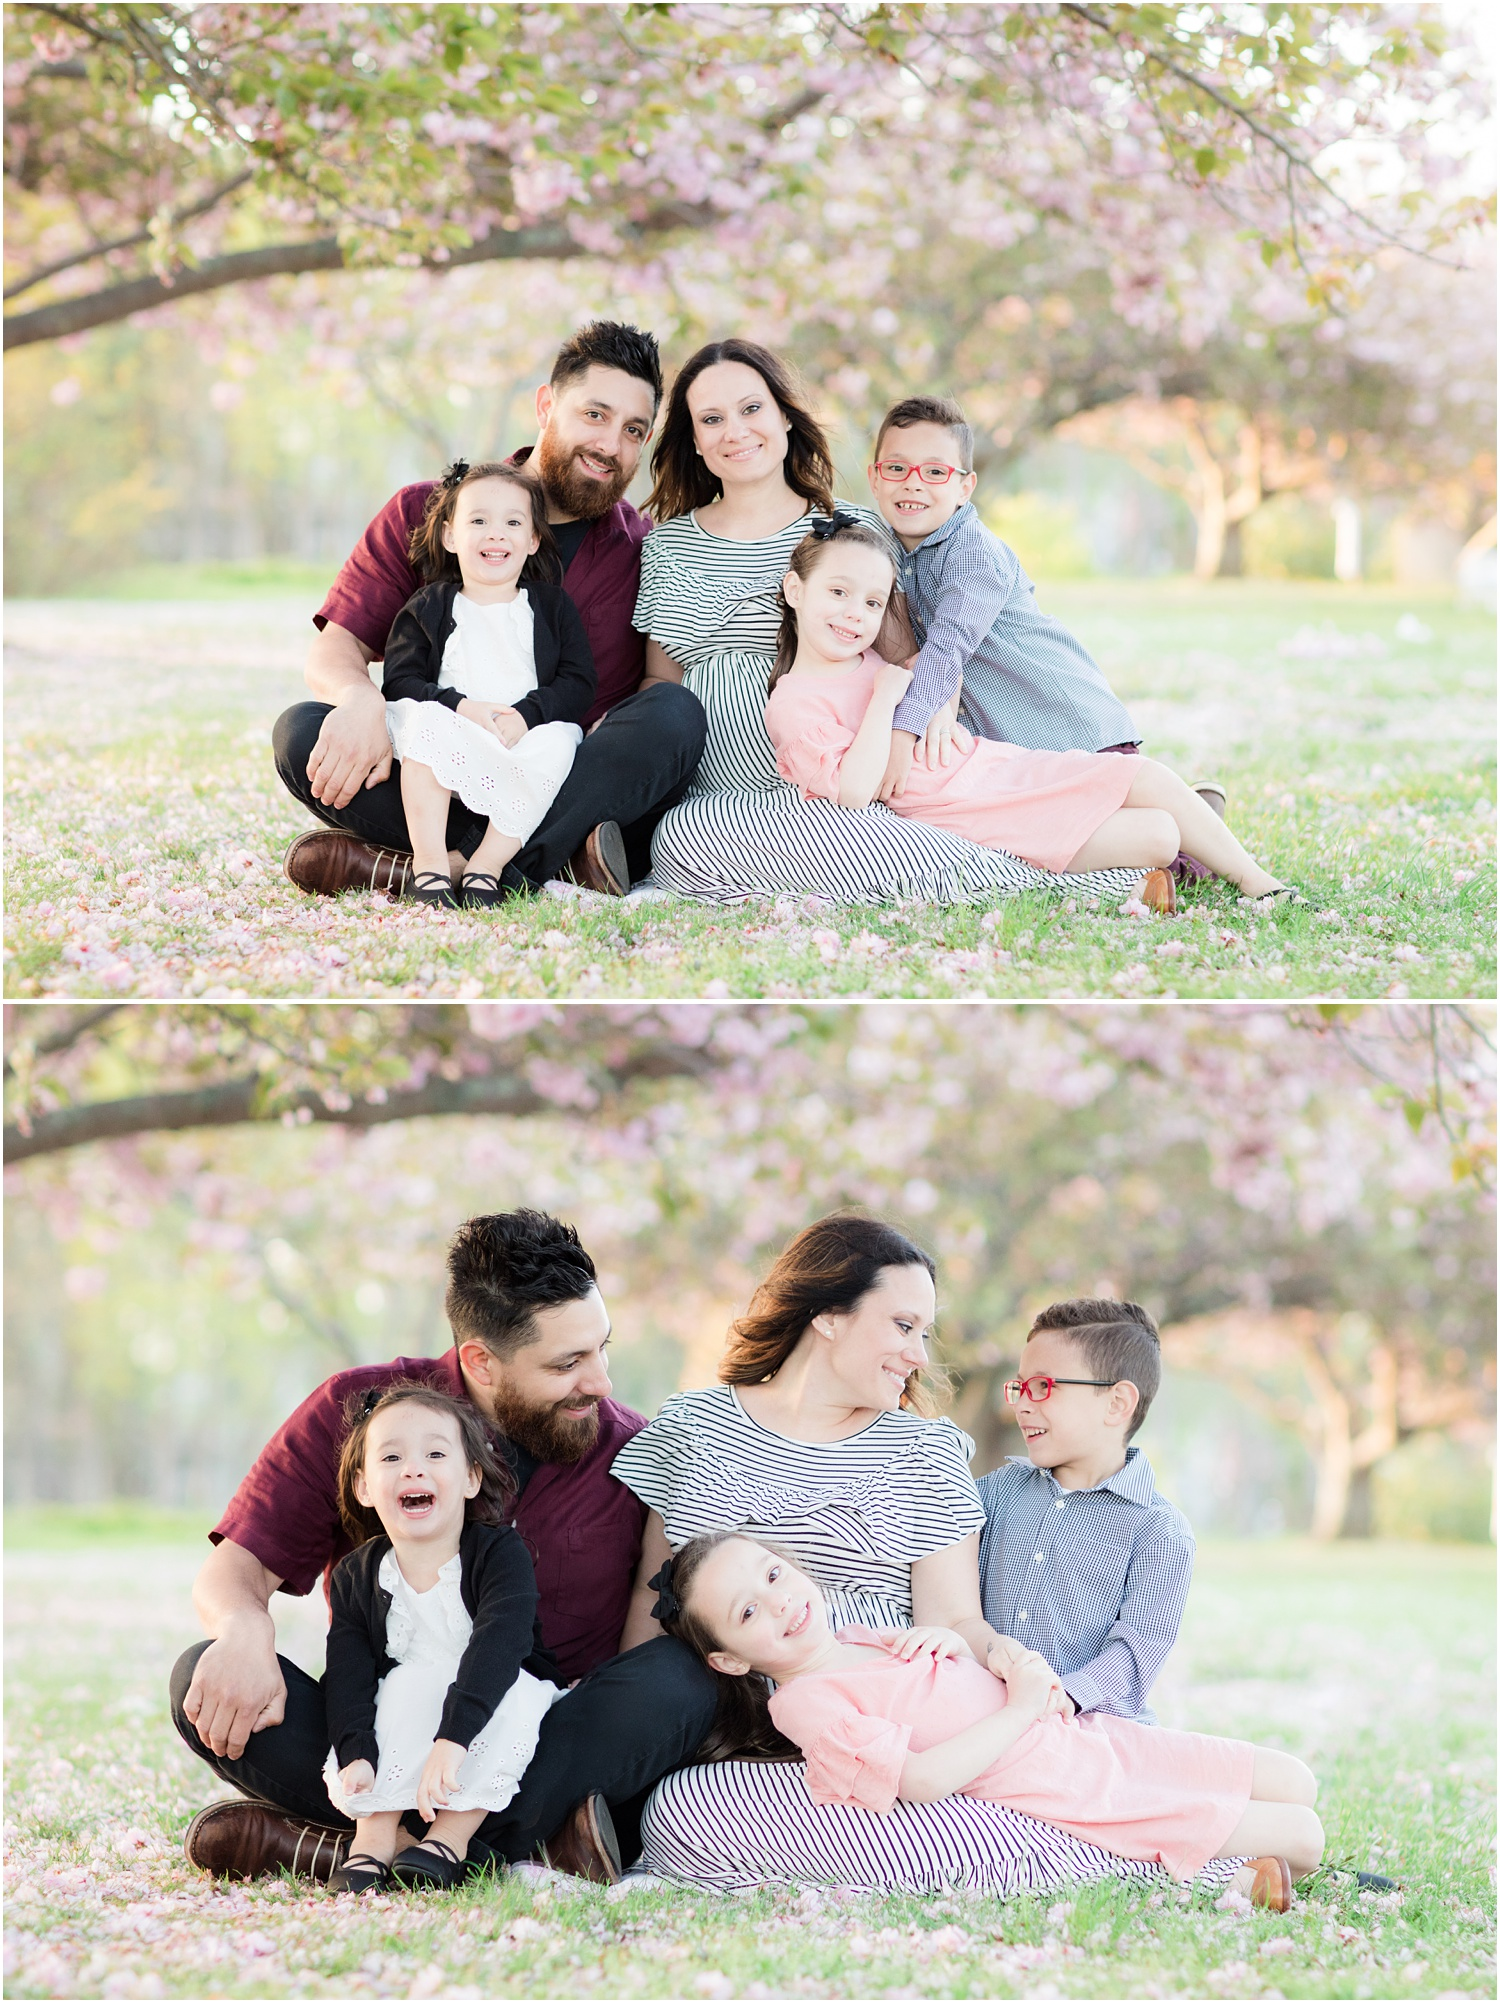 cozy family photo with cherry blossoms at Divine Park in Spring Lake.